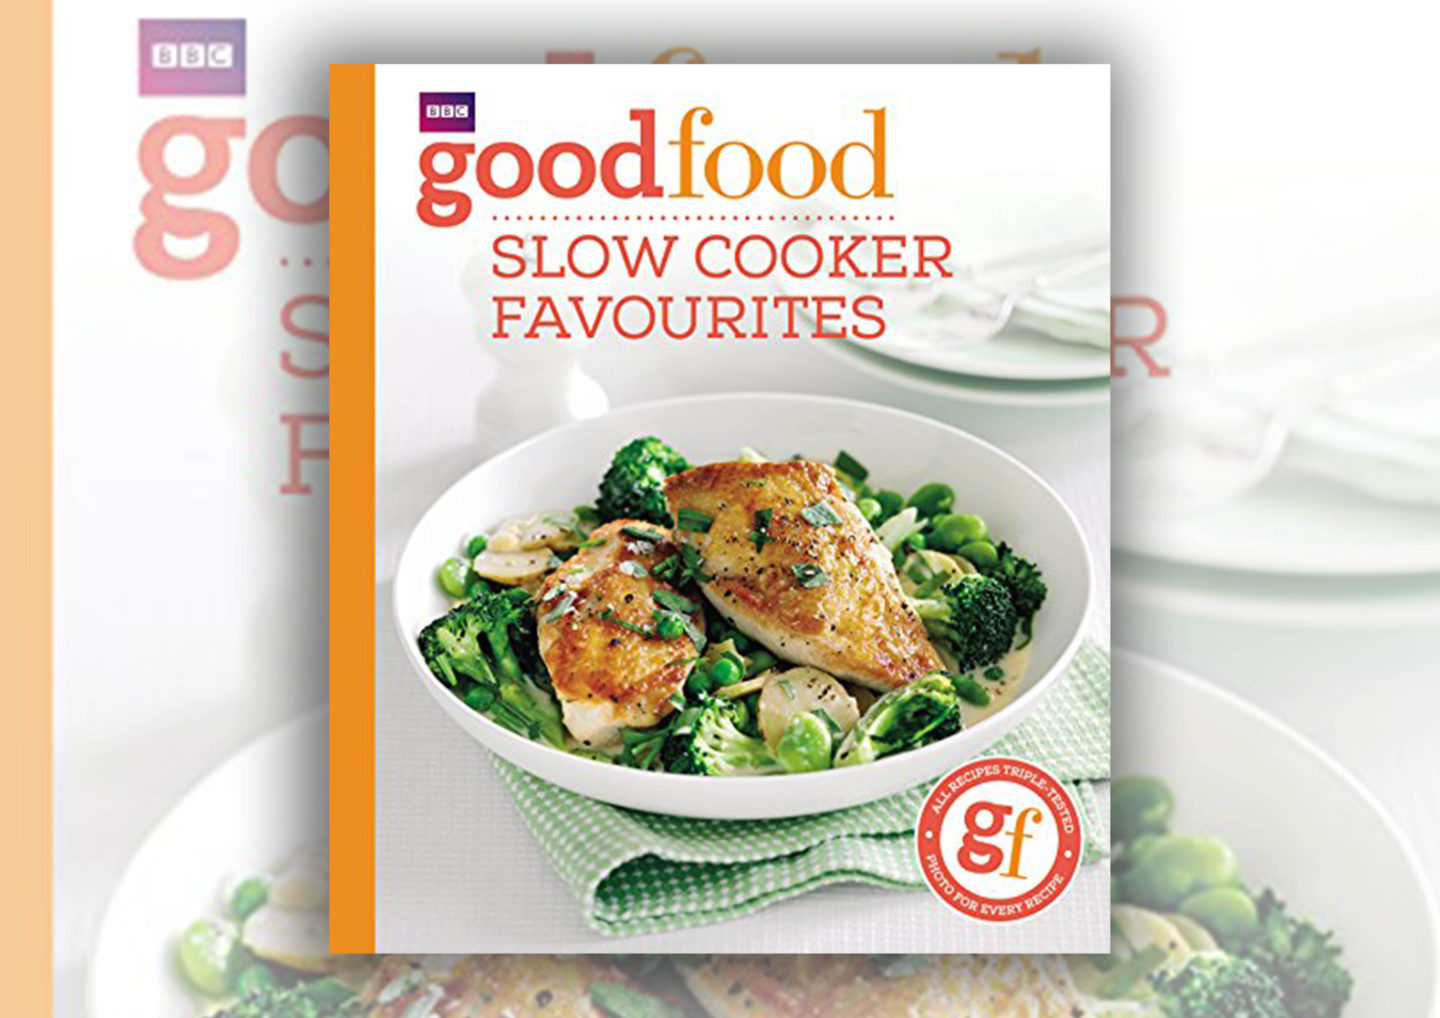 GoodFood Slow Cooker